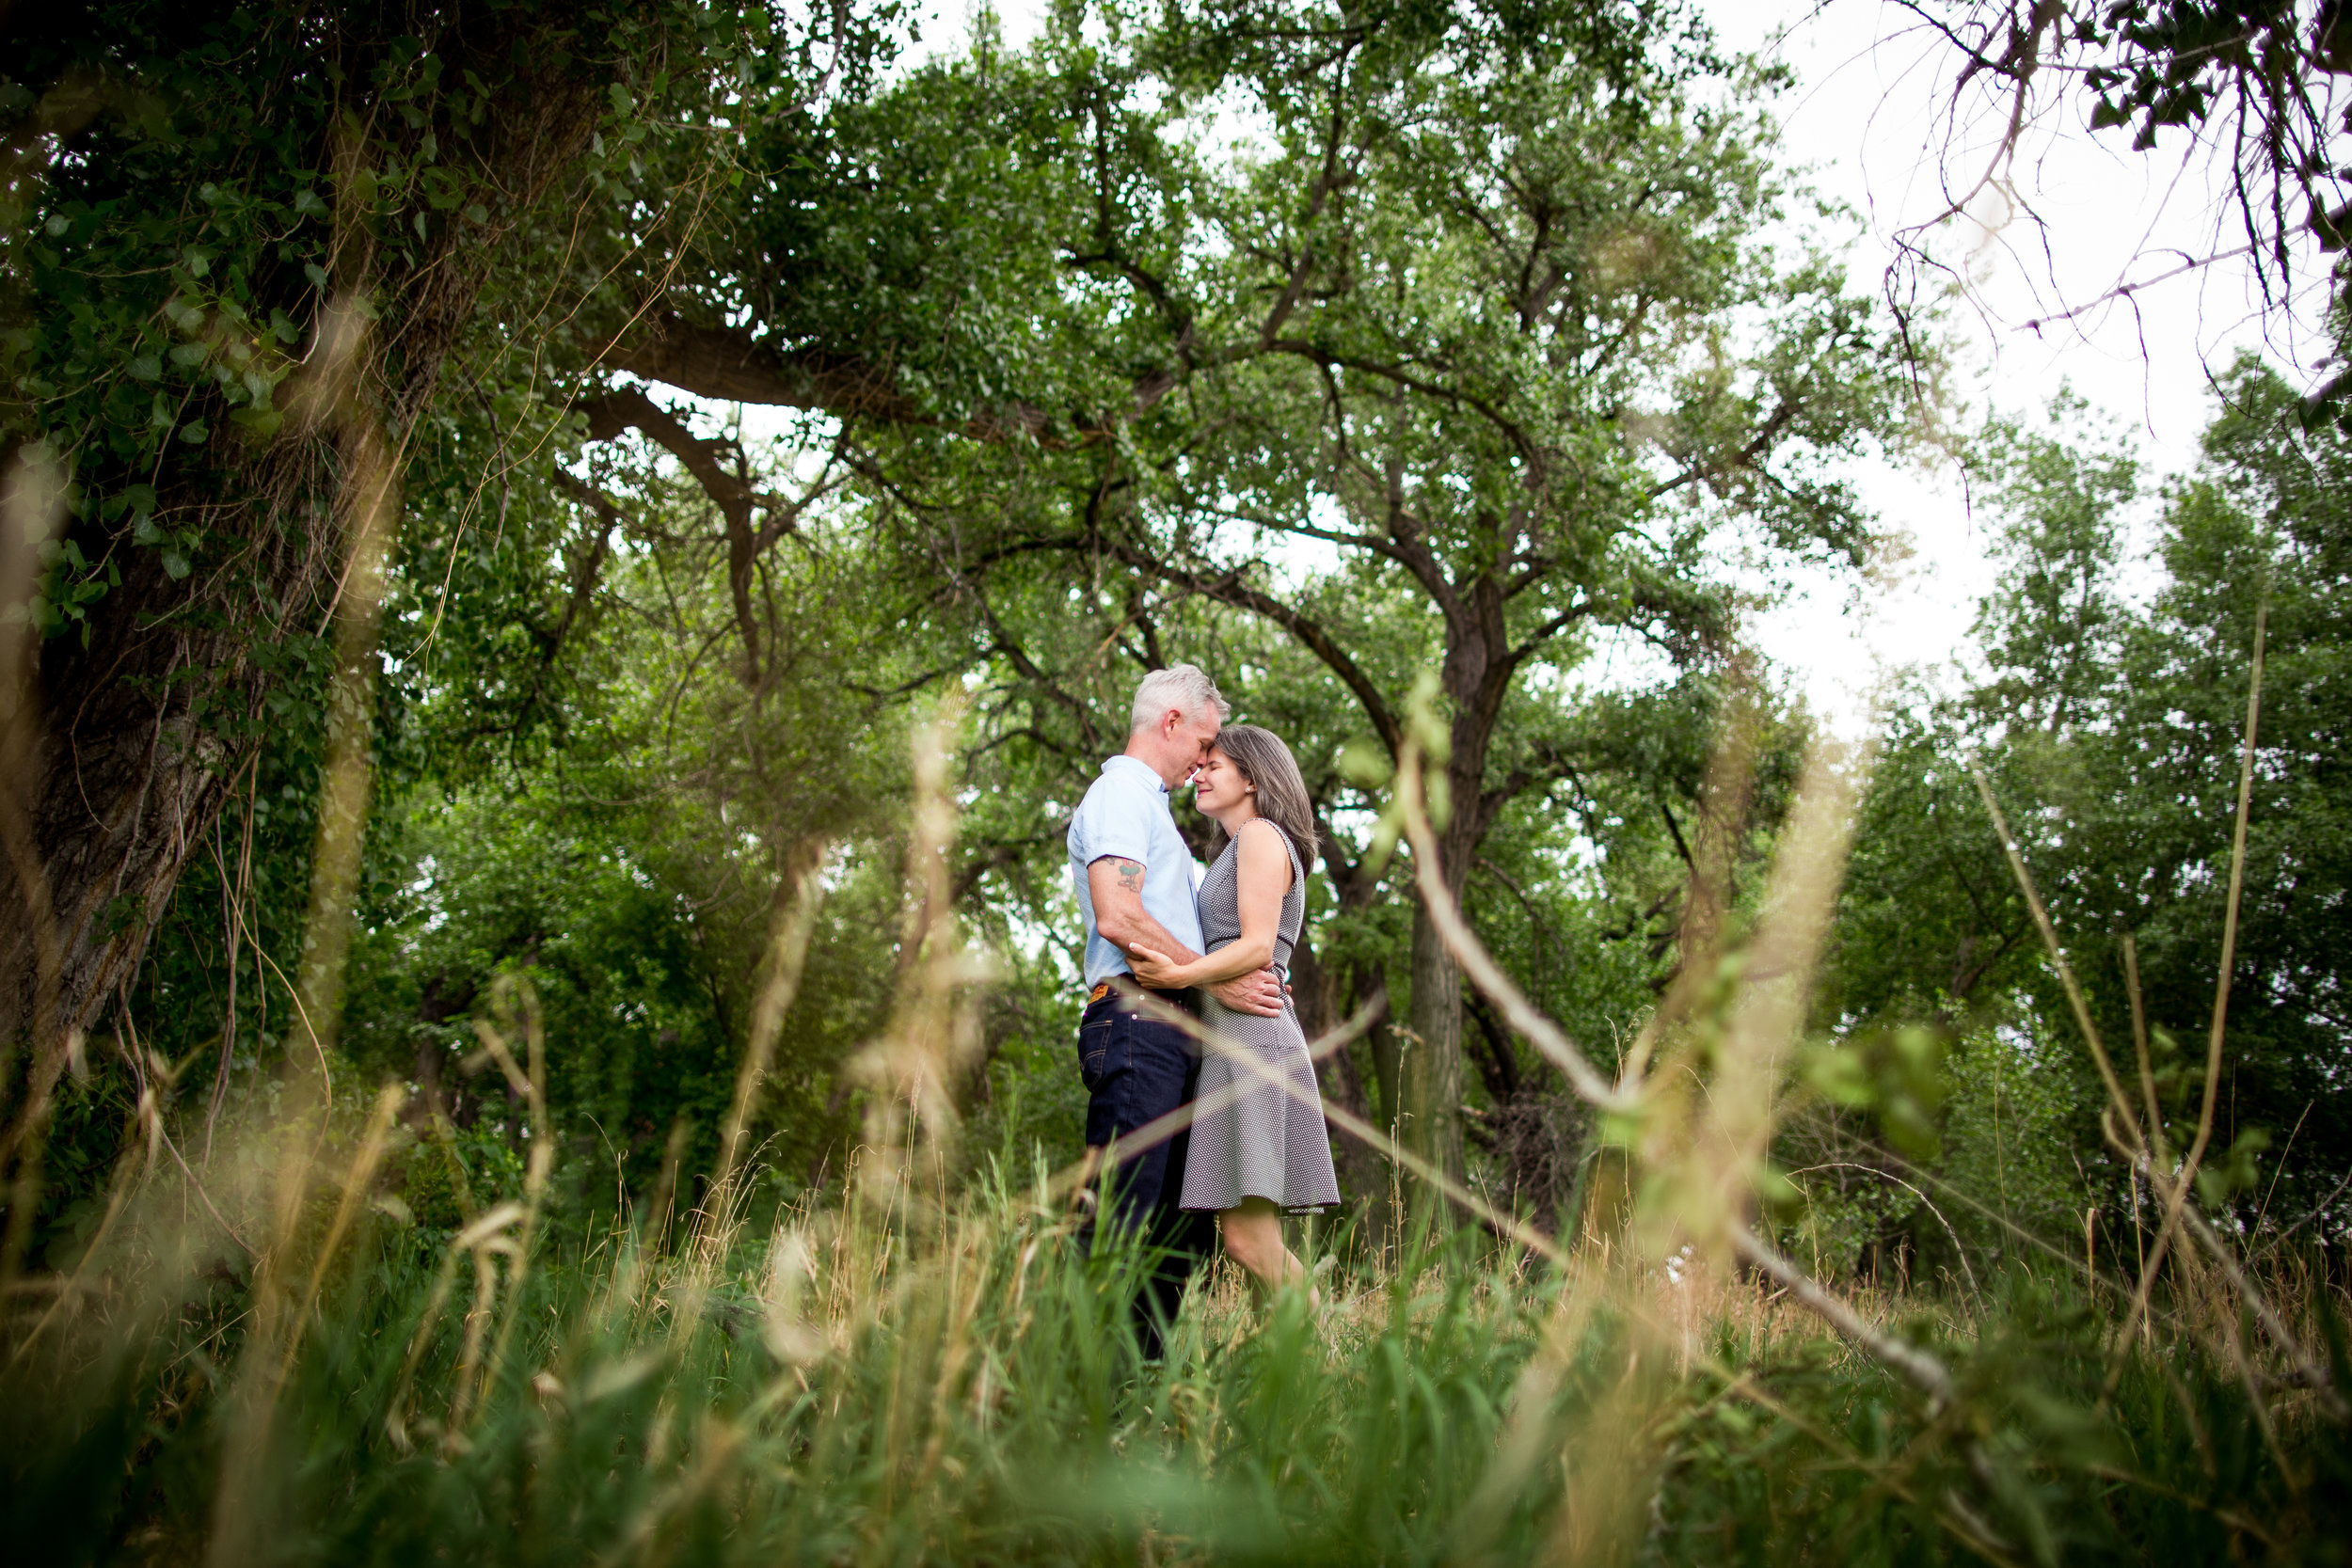 Click to see photos from Dan & Laurel's Engagement Session at Fountain Creek Nature Preserve